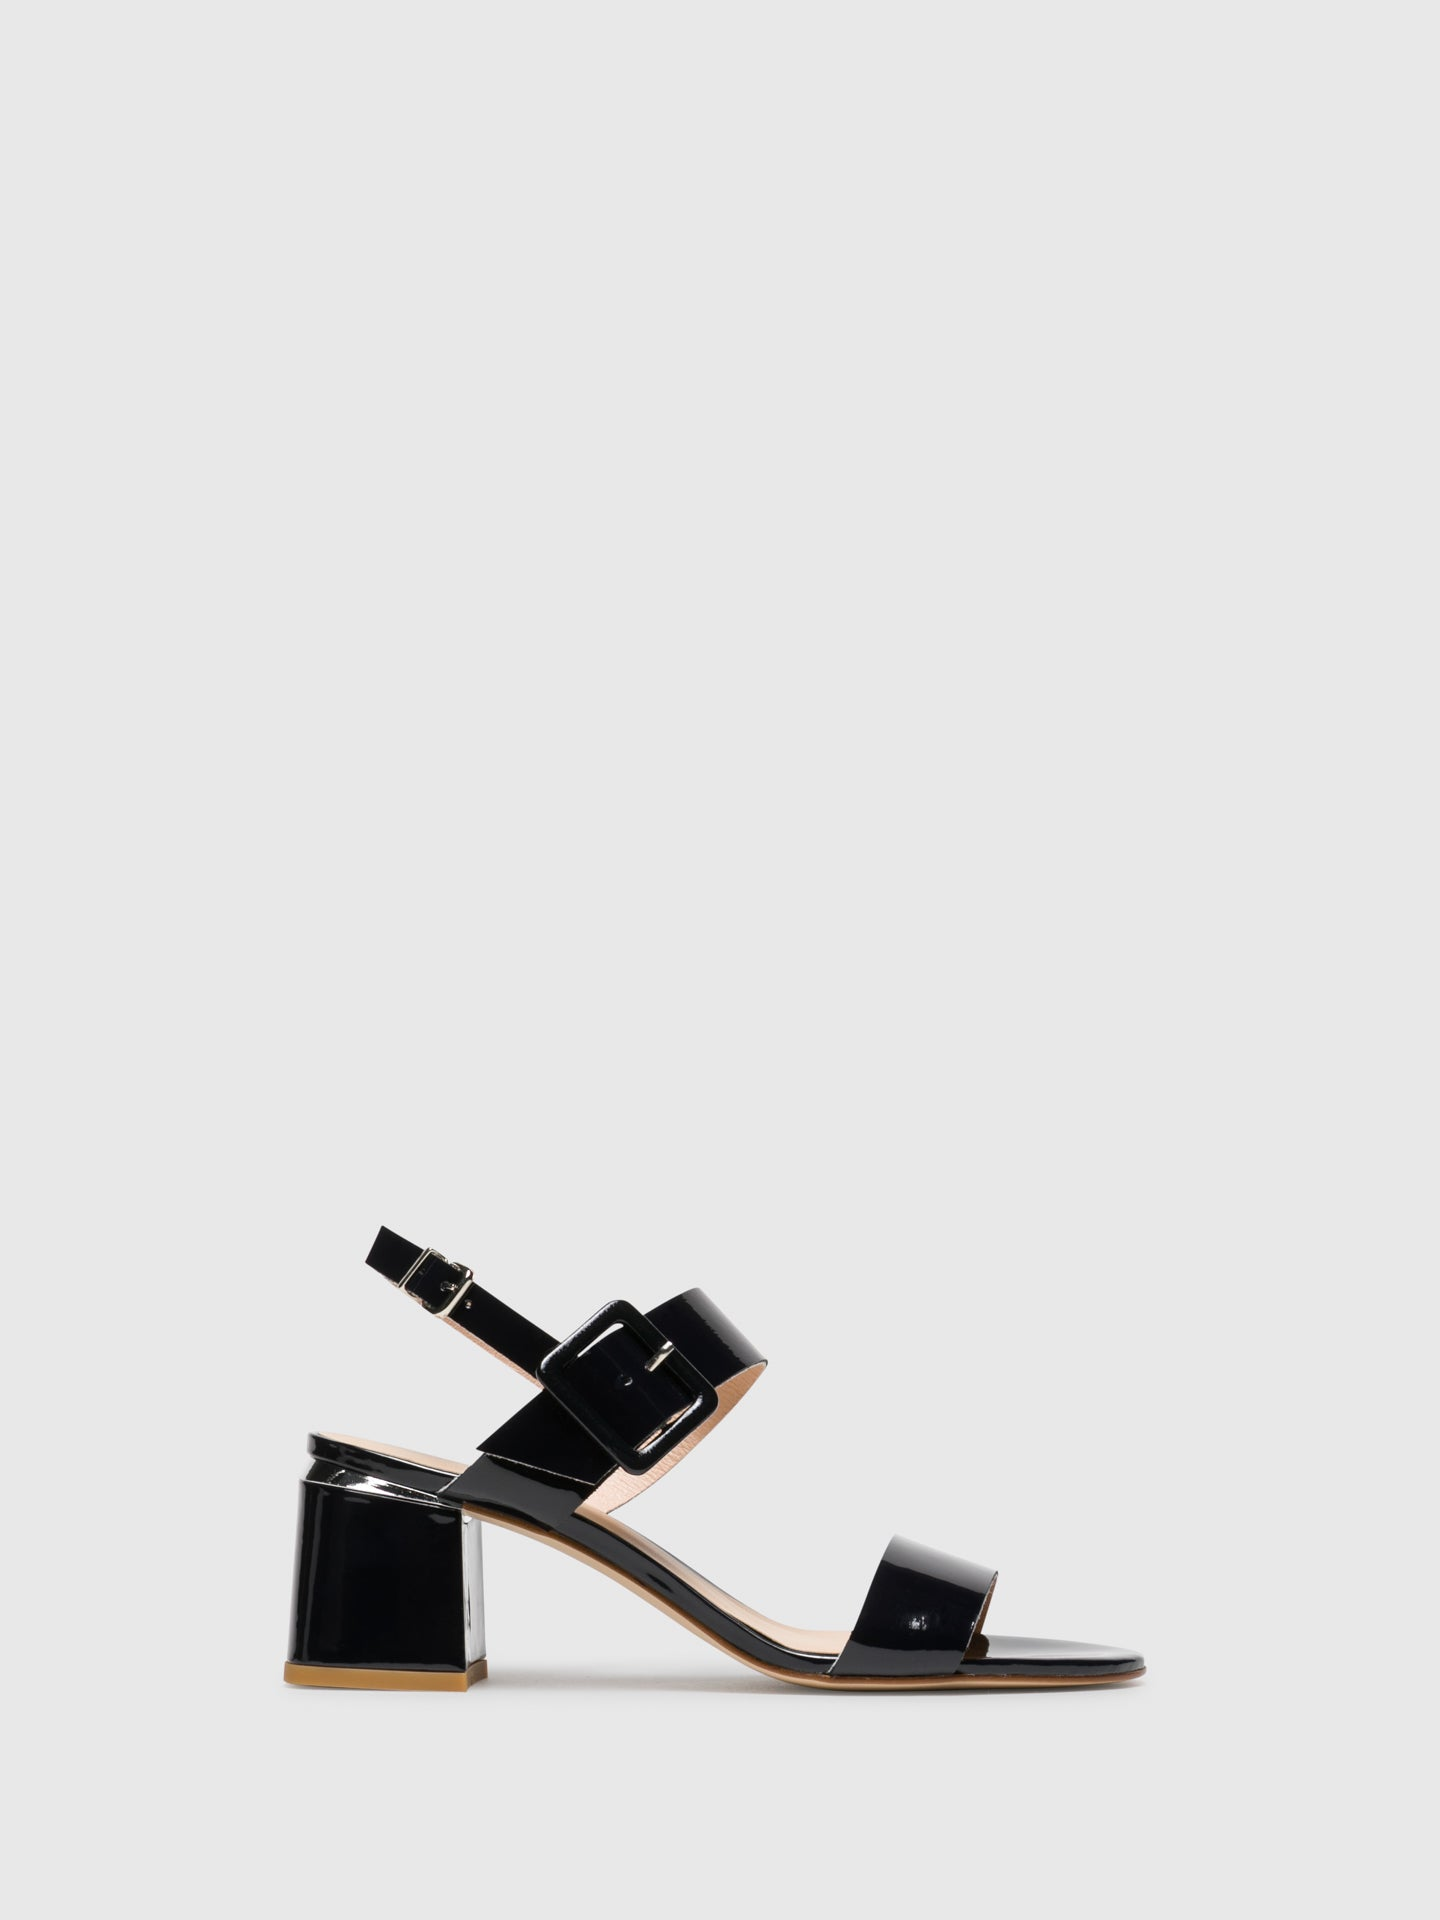 Sofia Costa Blue Buckle Sandals